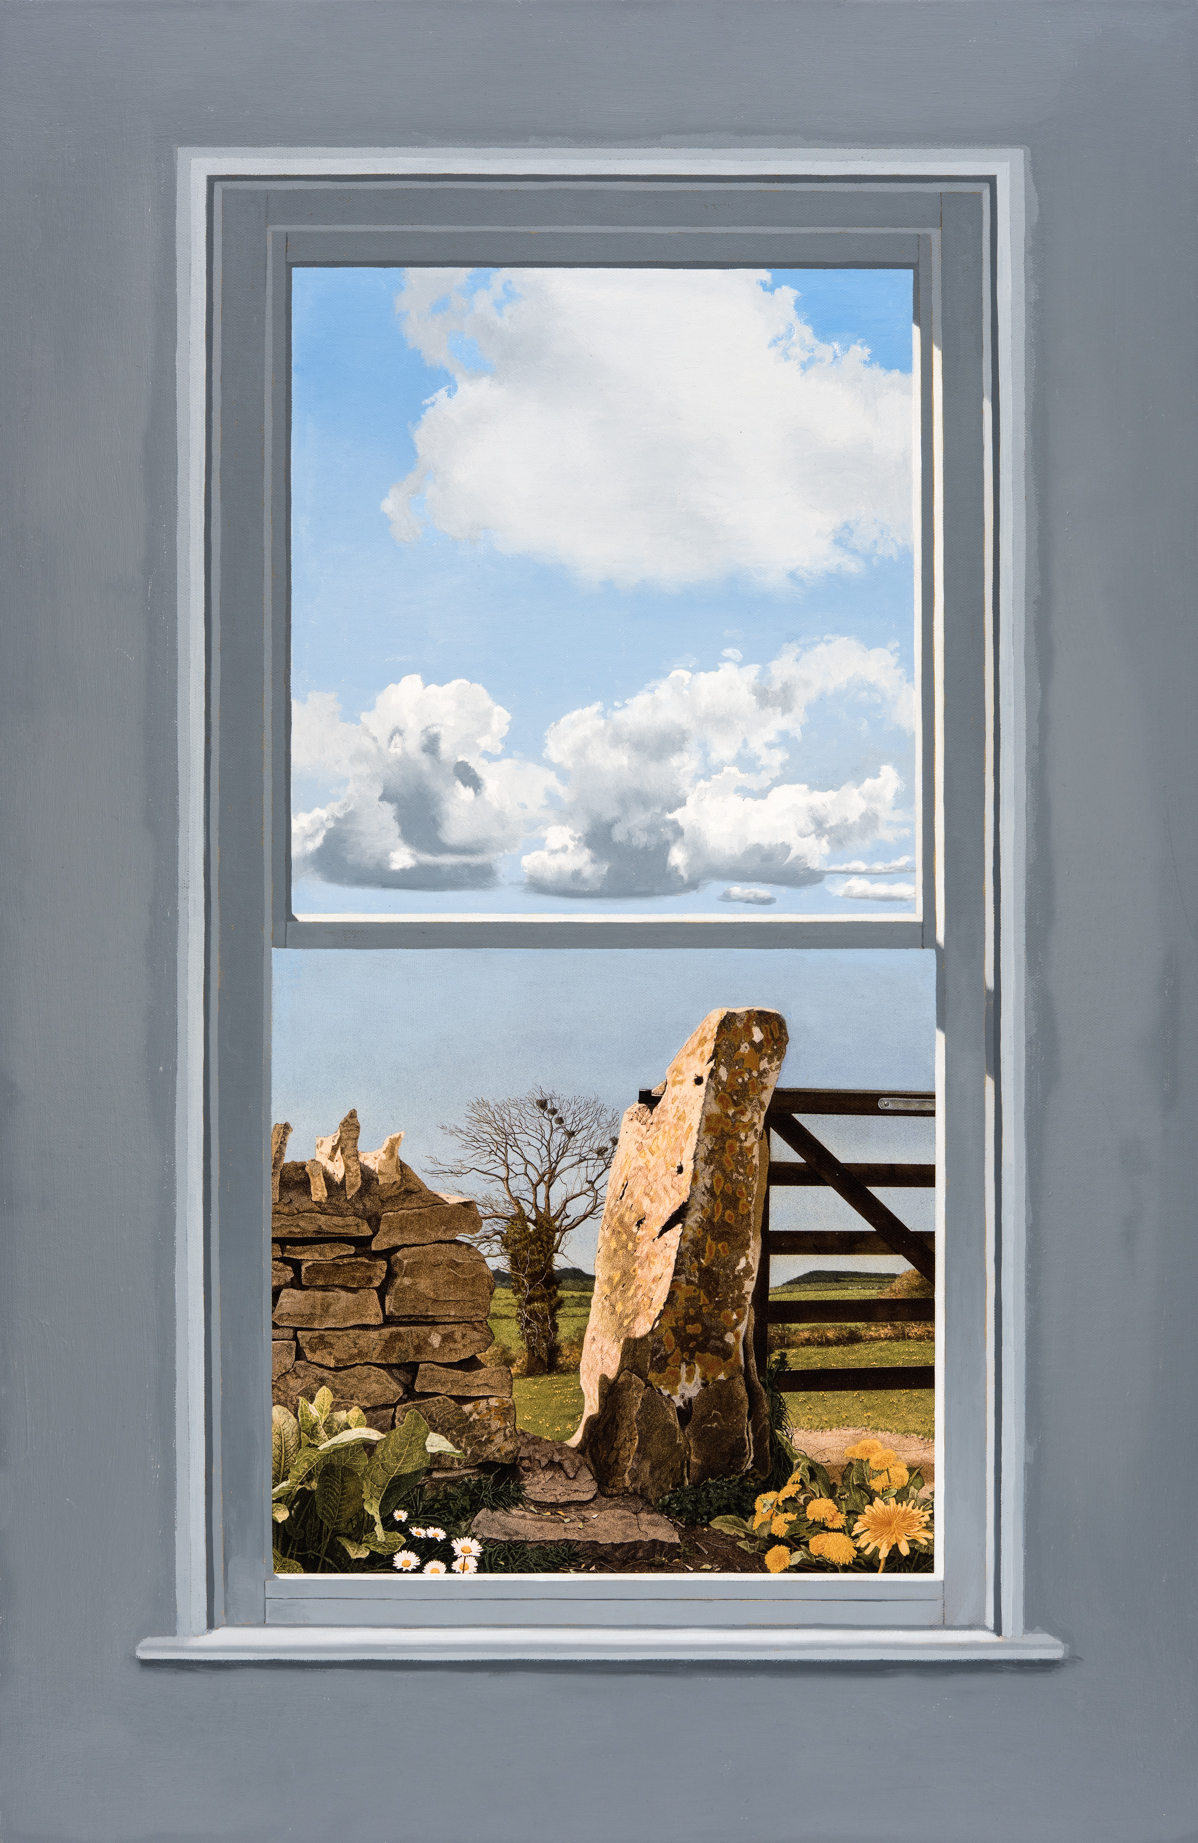 Spring Window – April Stile